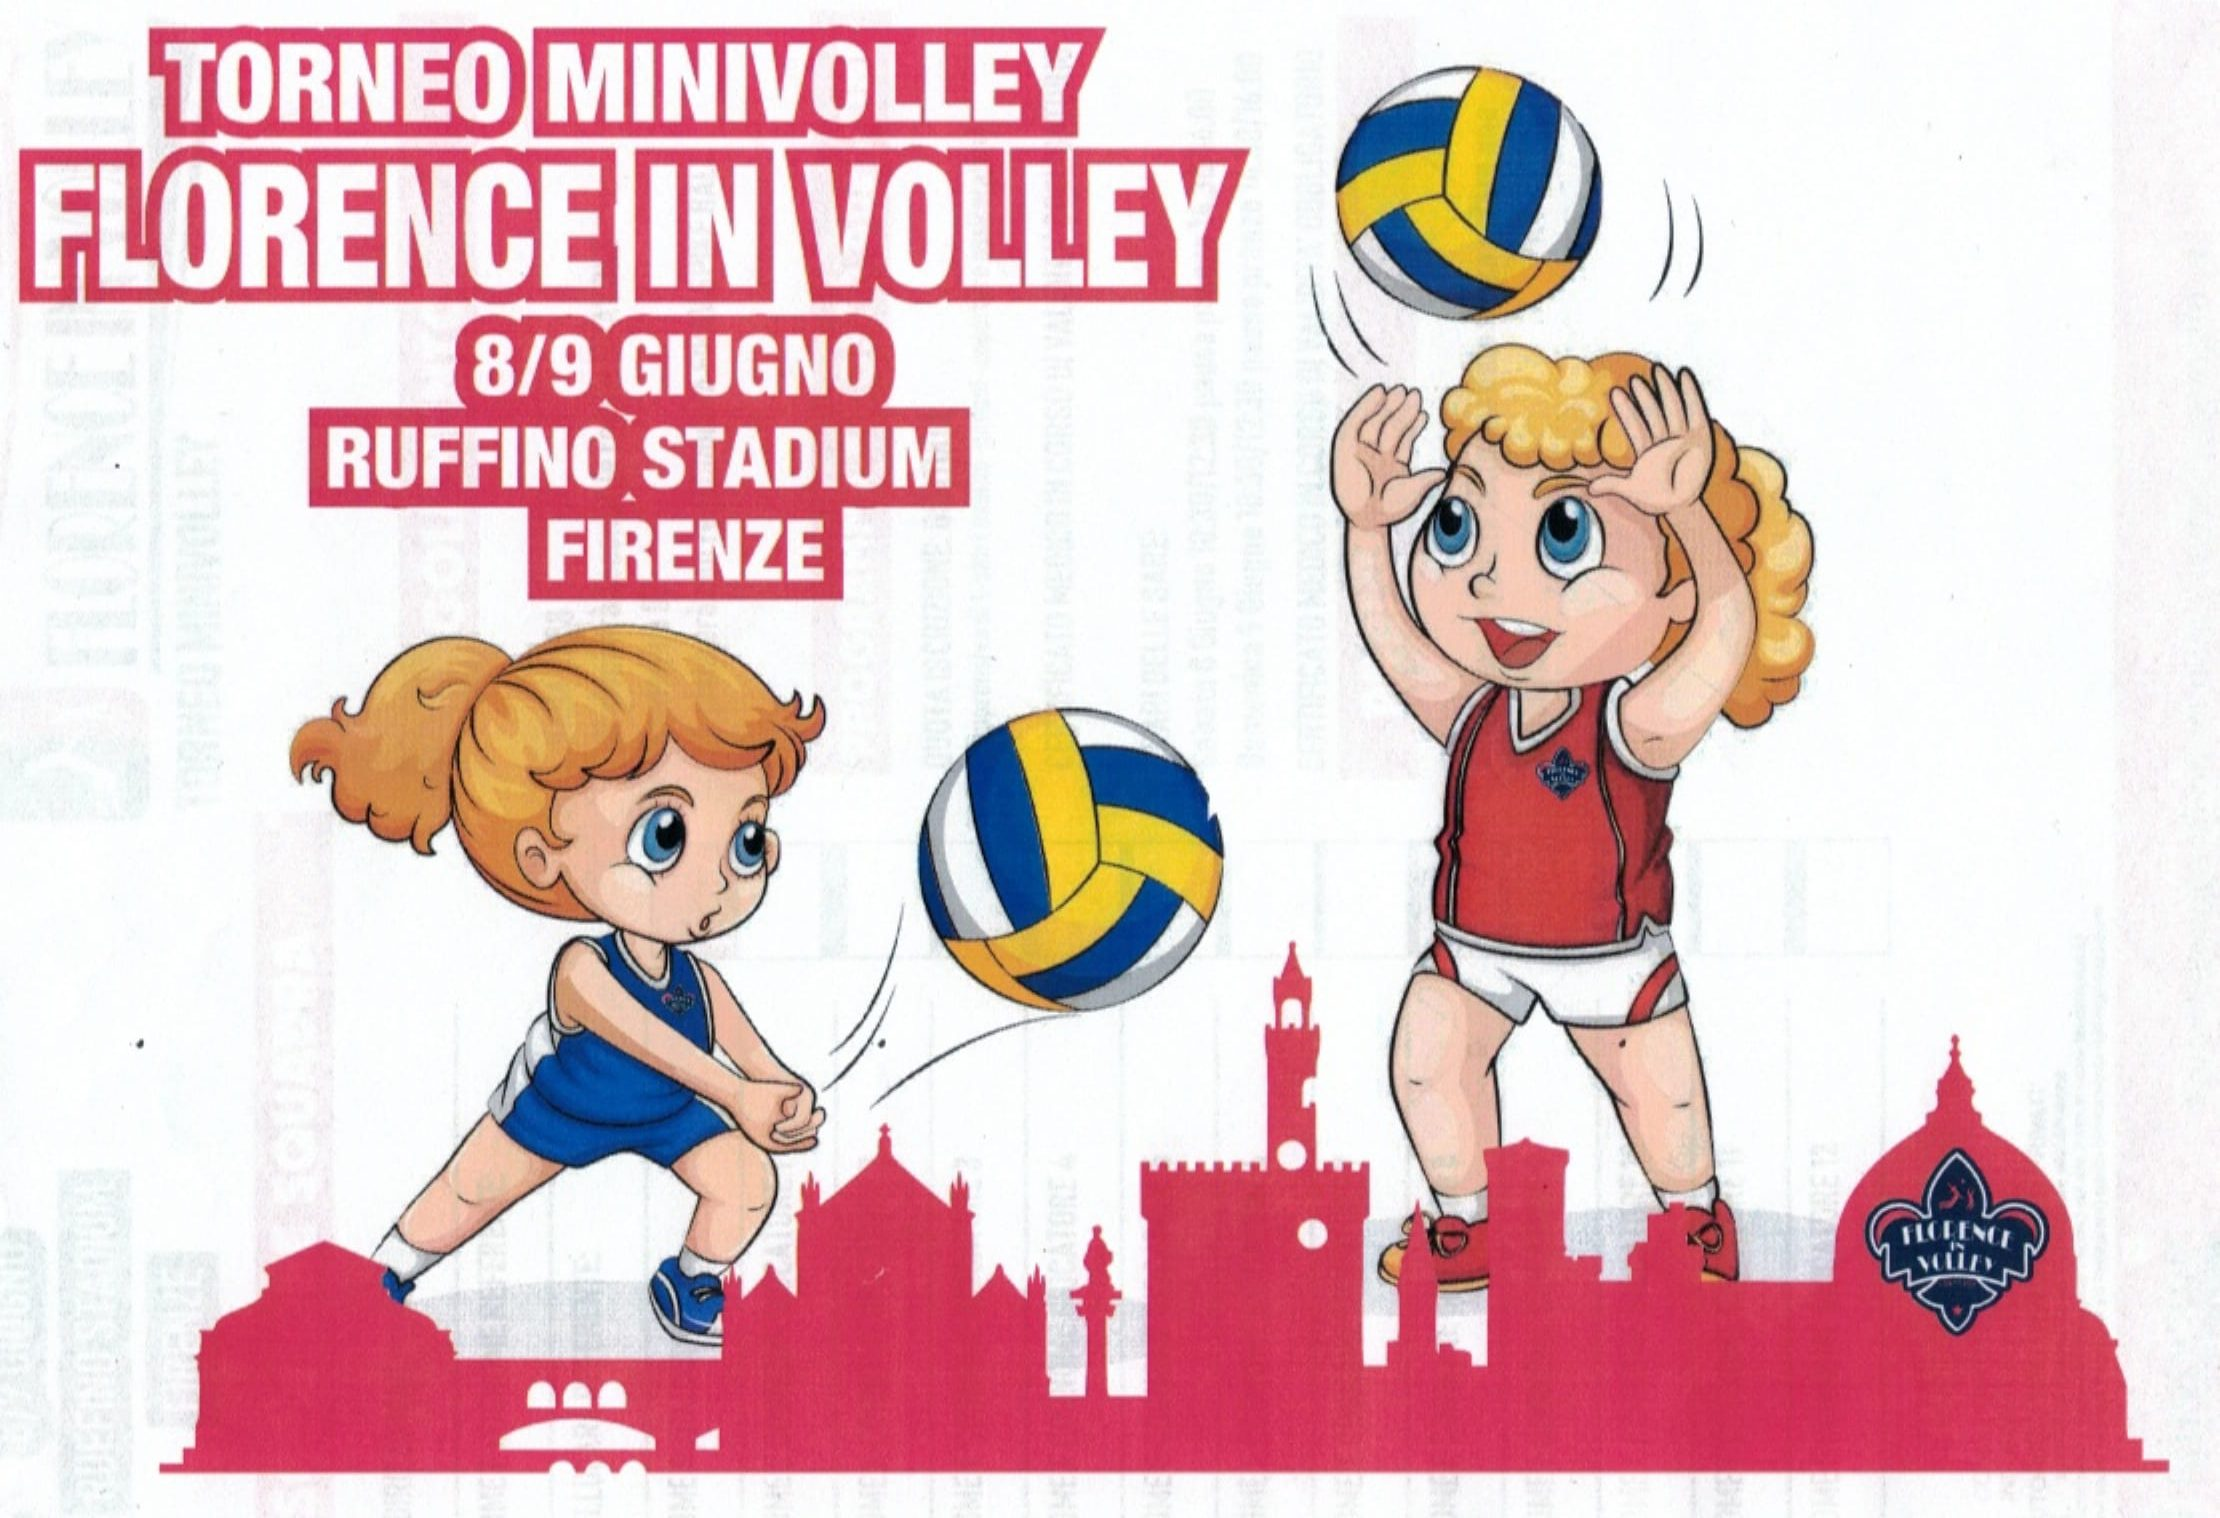 II° Torneo FLORENCE IN VOLLEY cat. U16 e Mini Volley